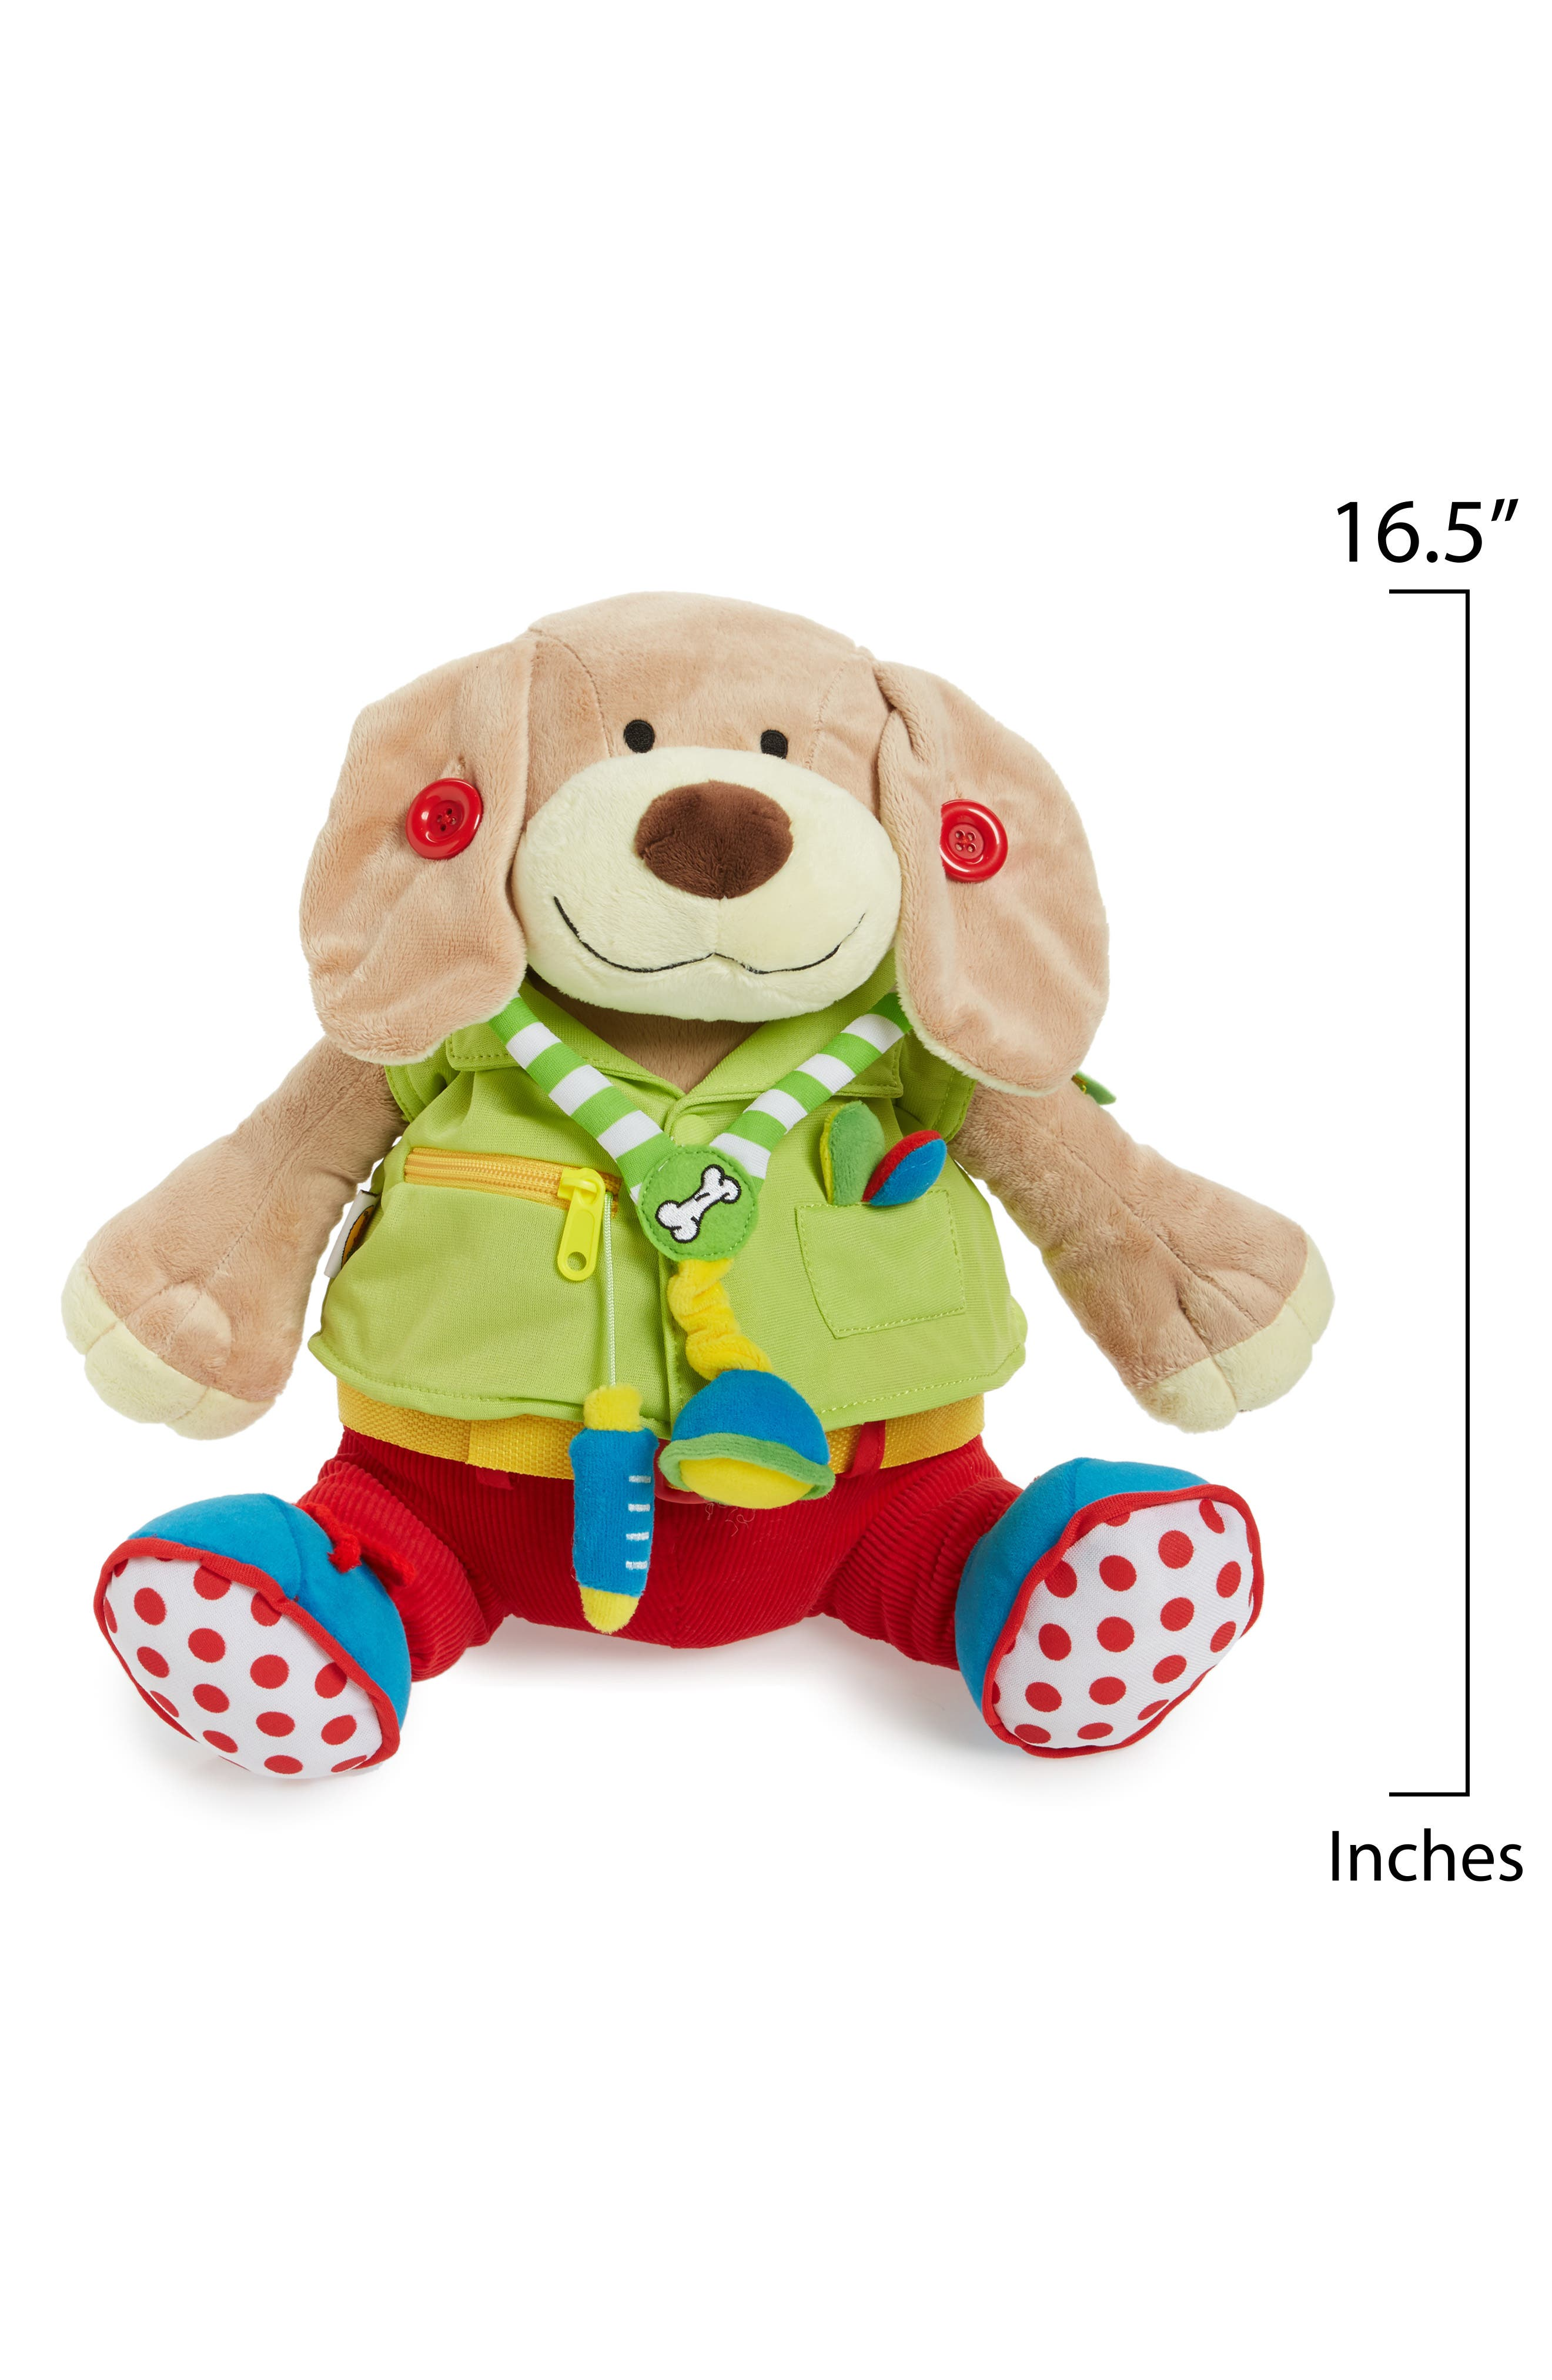 Dr Pooch Stuffed Activity Toy,                             Alternate thumbnail 2, color,                             300